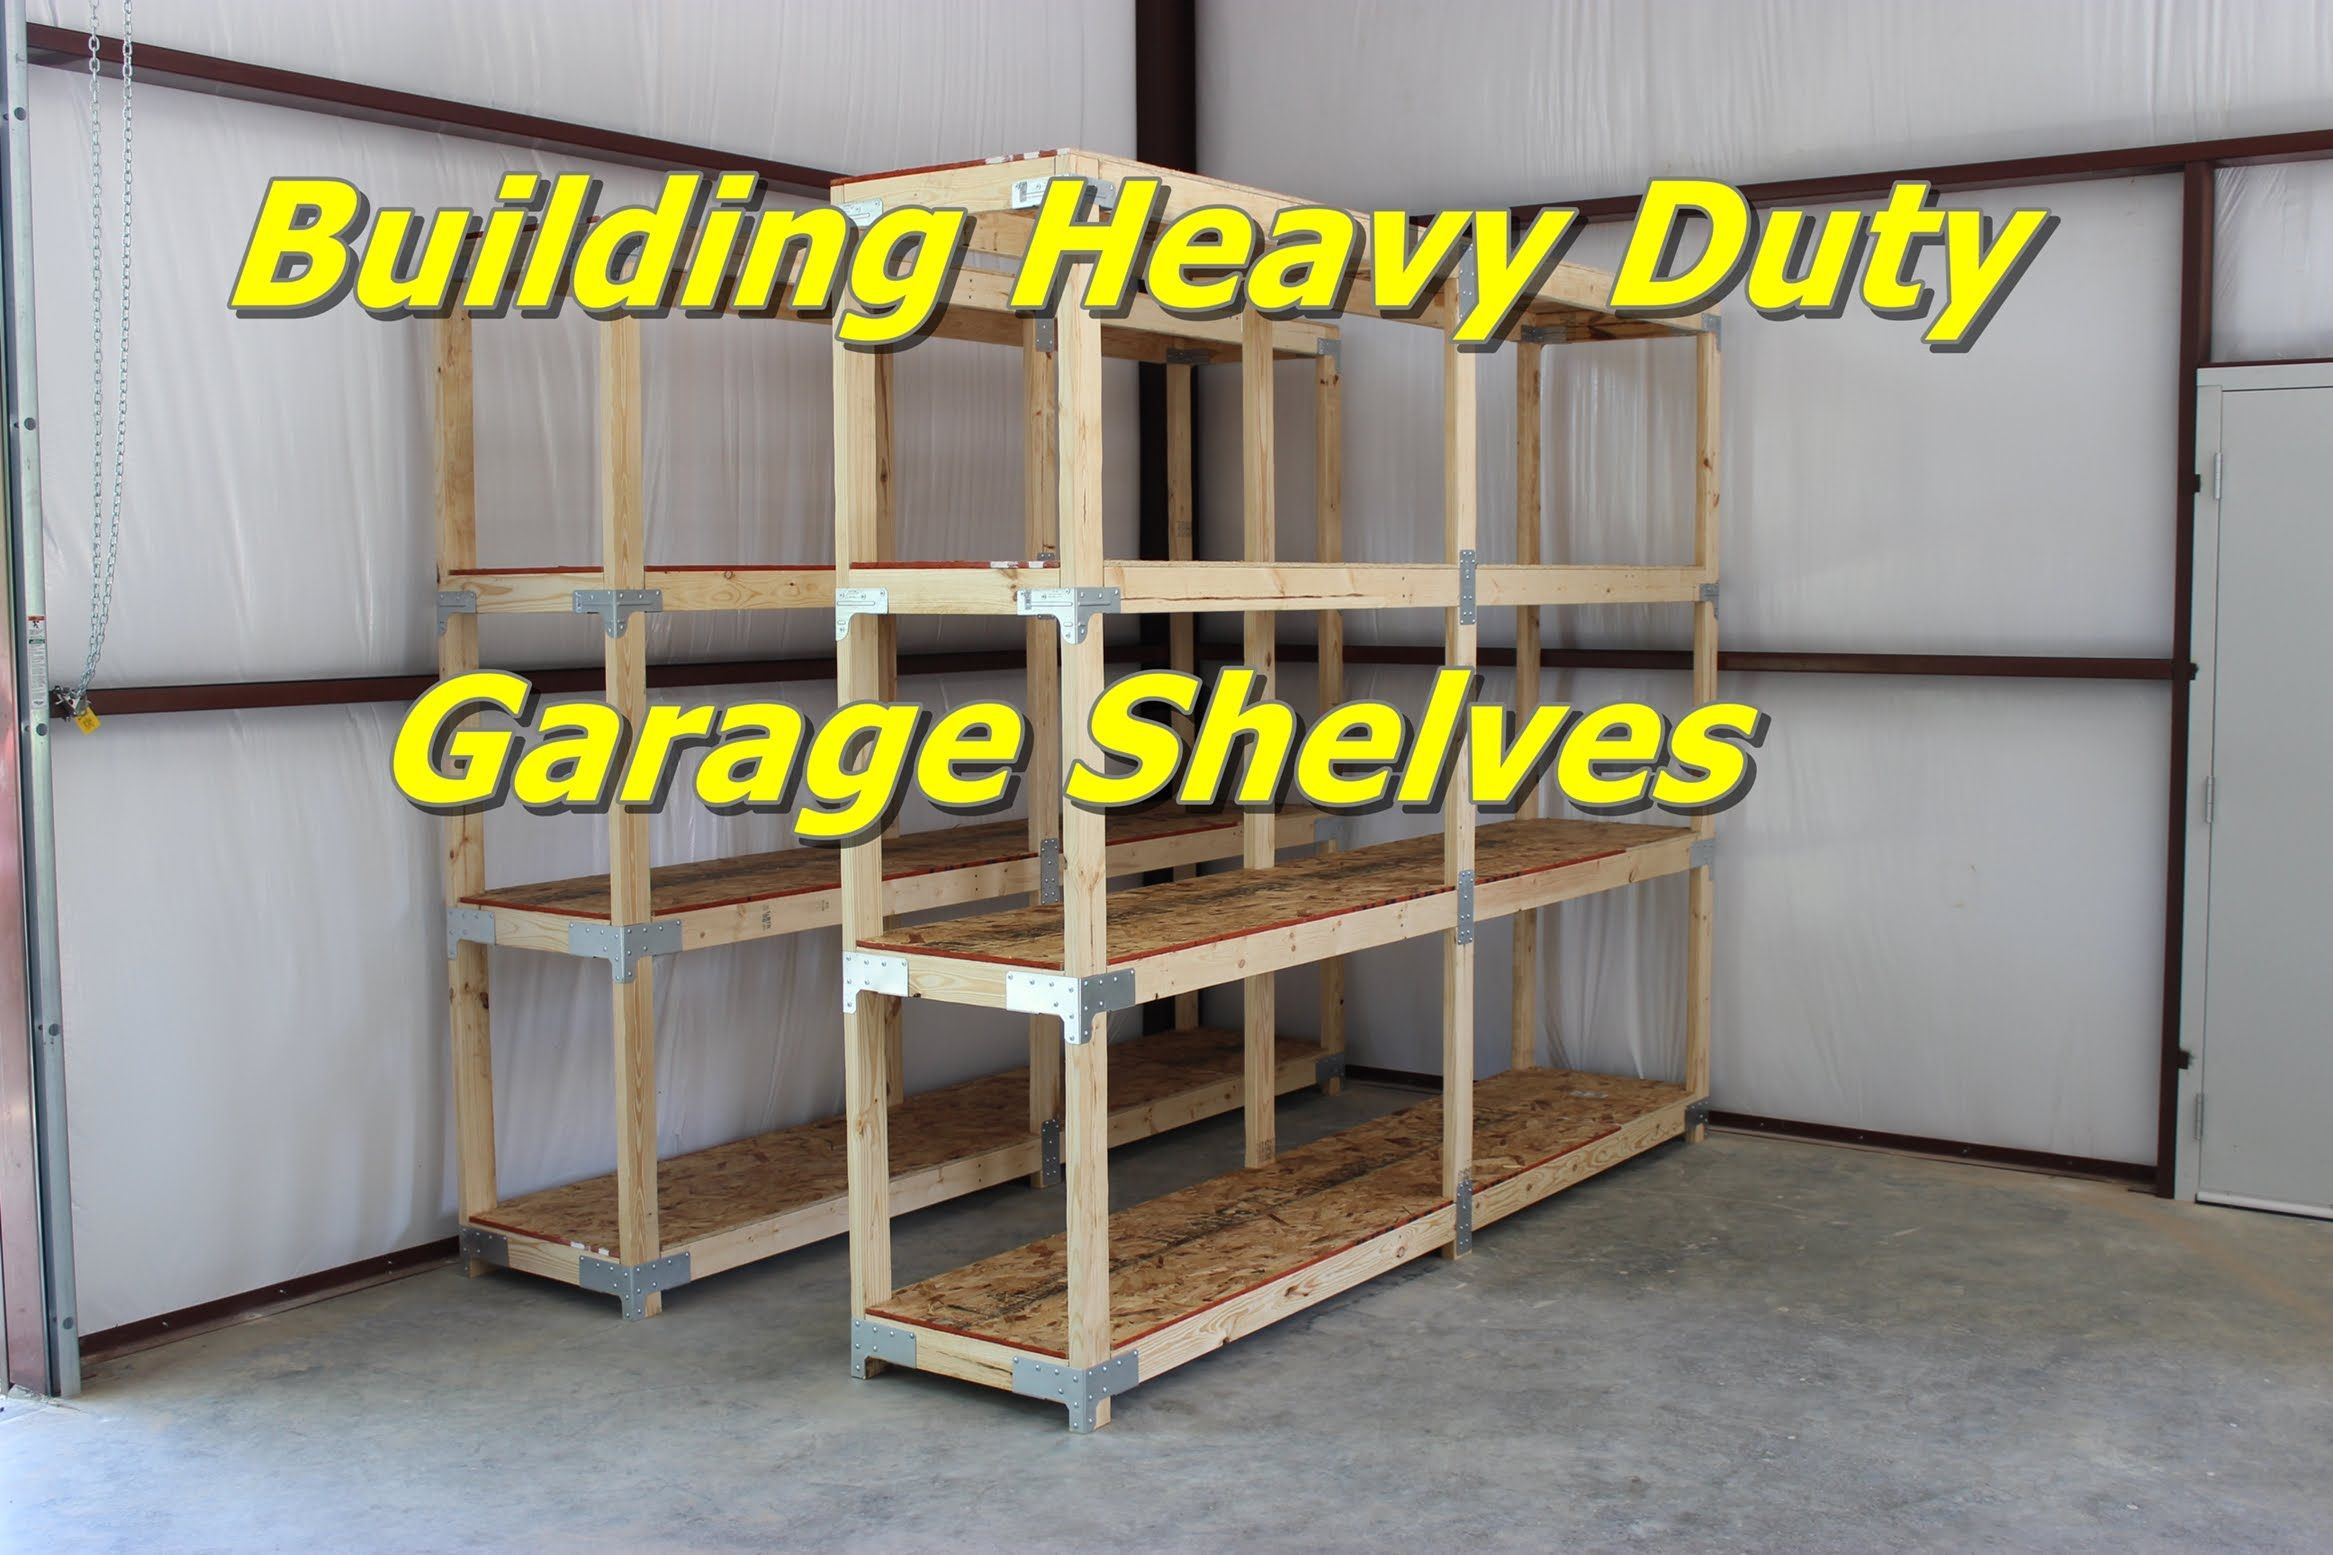 Building Heavy Duty Garage Shelves (With images) Garage